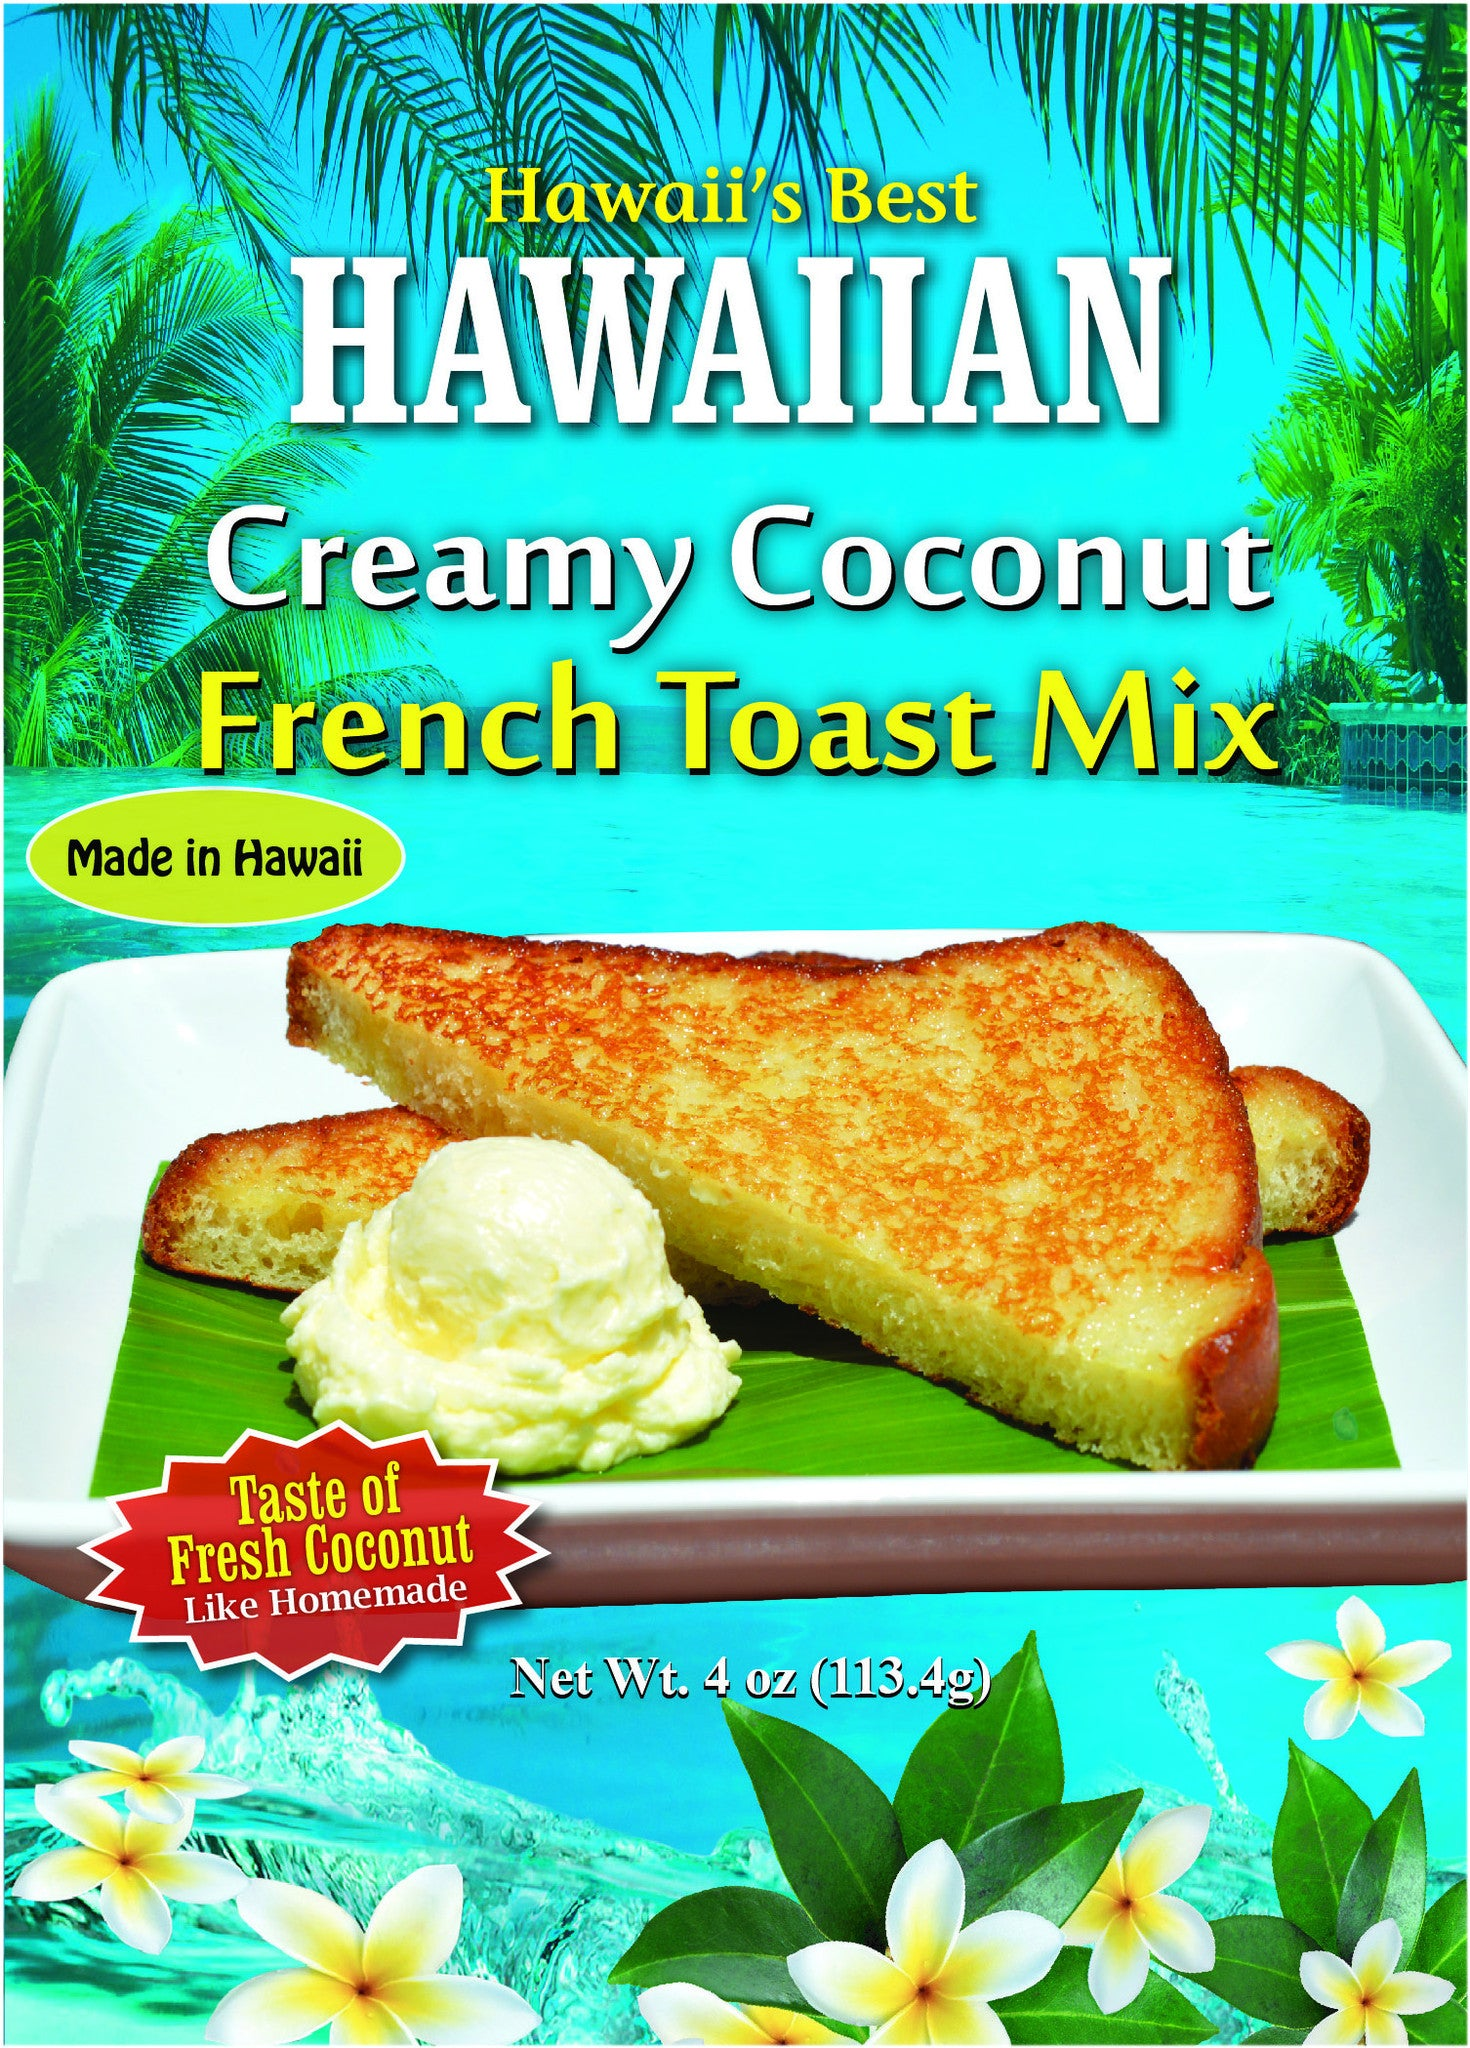 FREE SHIPPING! (20 BAGS - EXTRA VALUE PACK, $2.99 EACH!) HAWAIIAN CREAMY COCONUT COCONUT FRENCH TOAST MIX (4 oz package).  Makes approx 12 slices of French Toast.  NEW ITEM!